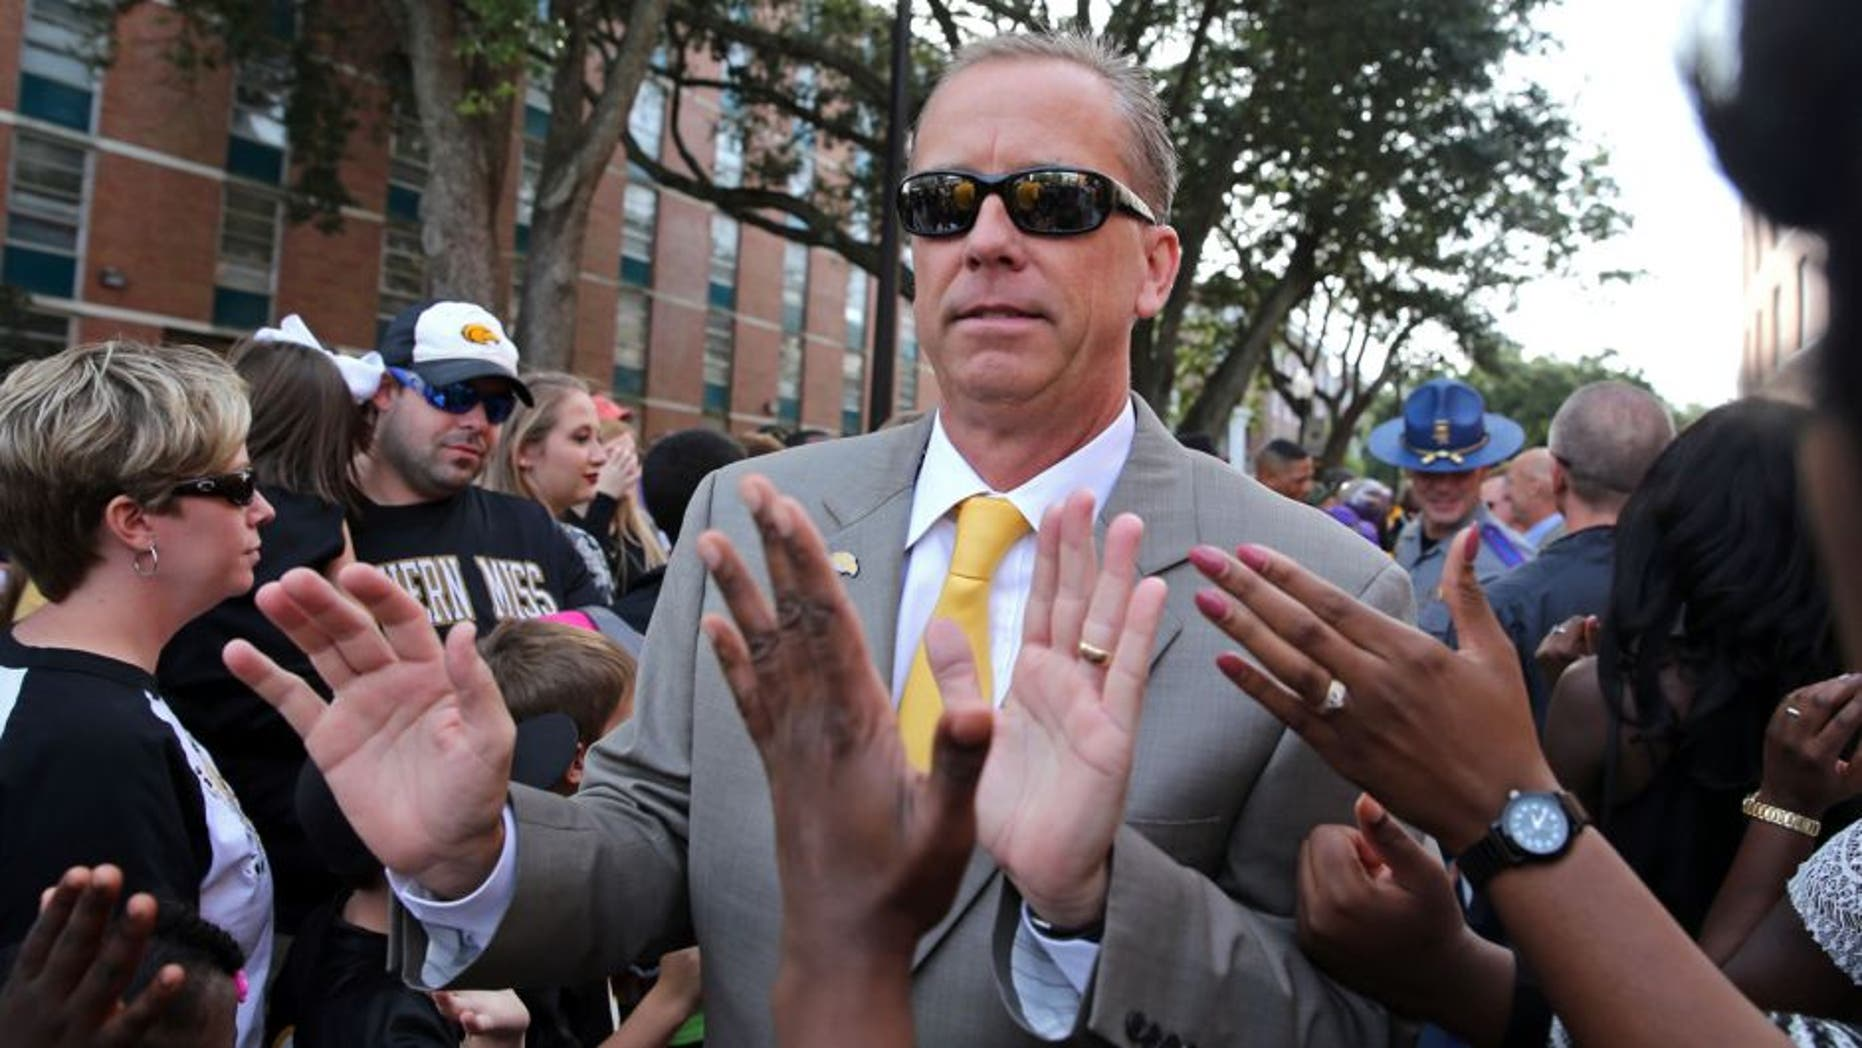 Oct 17, 2015; Hattiesburg, MS, USA; Southern Miss Golden Eagles head coach Todd Monken greets fans during Eagle Walk before their game against the UTSA Roadrunners at M.M. Roberts Stadium. Mandatory Credit: Chuck Cook-USA TODAY Sports